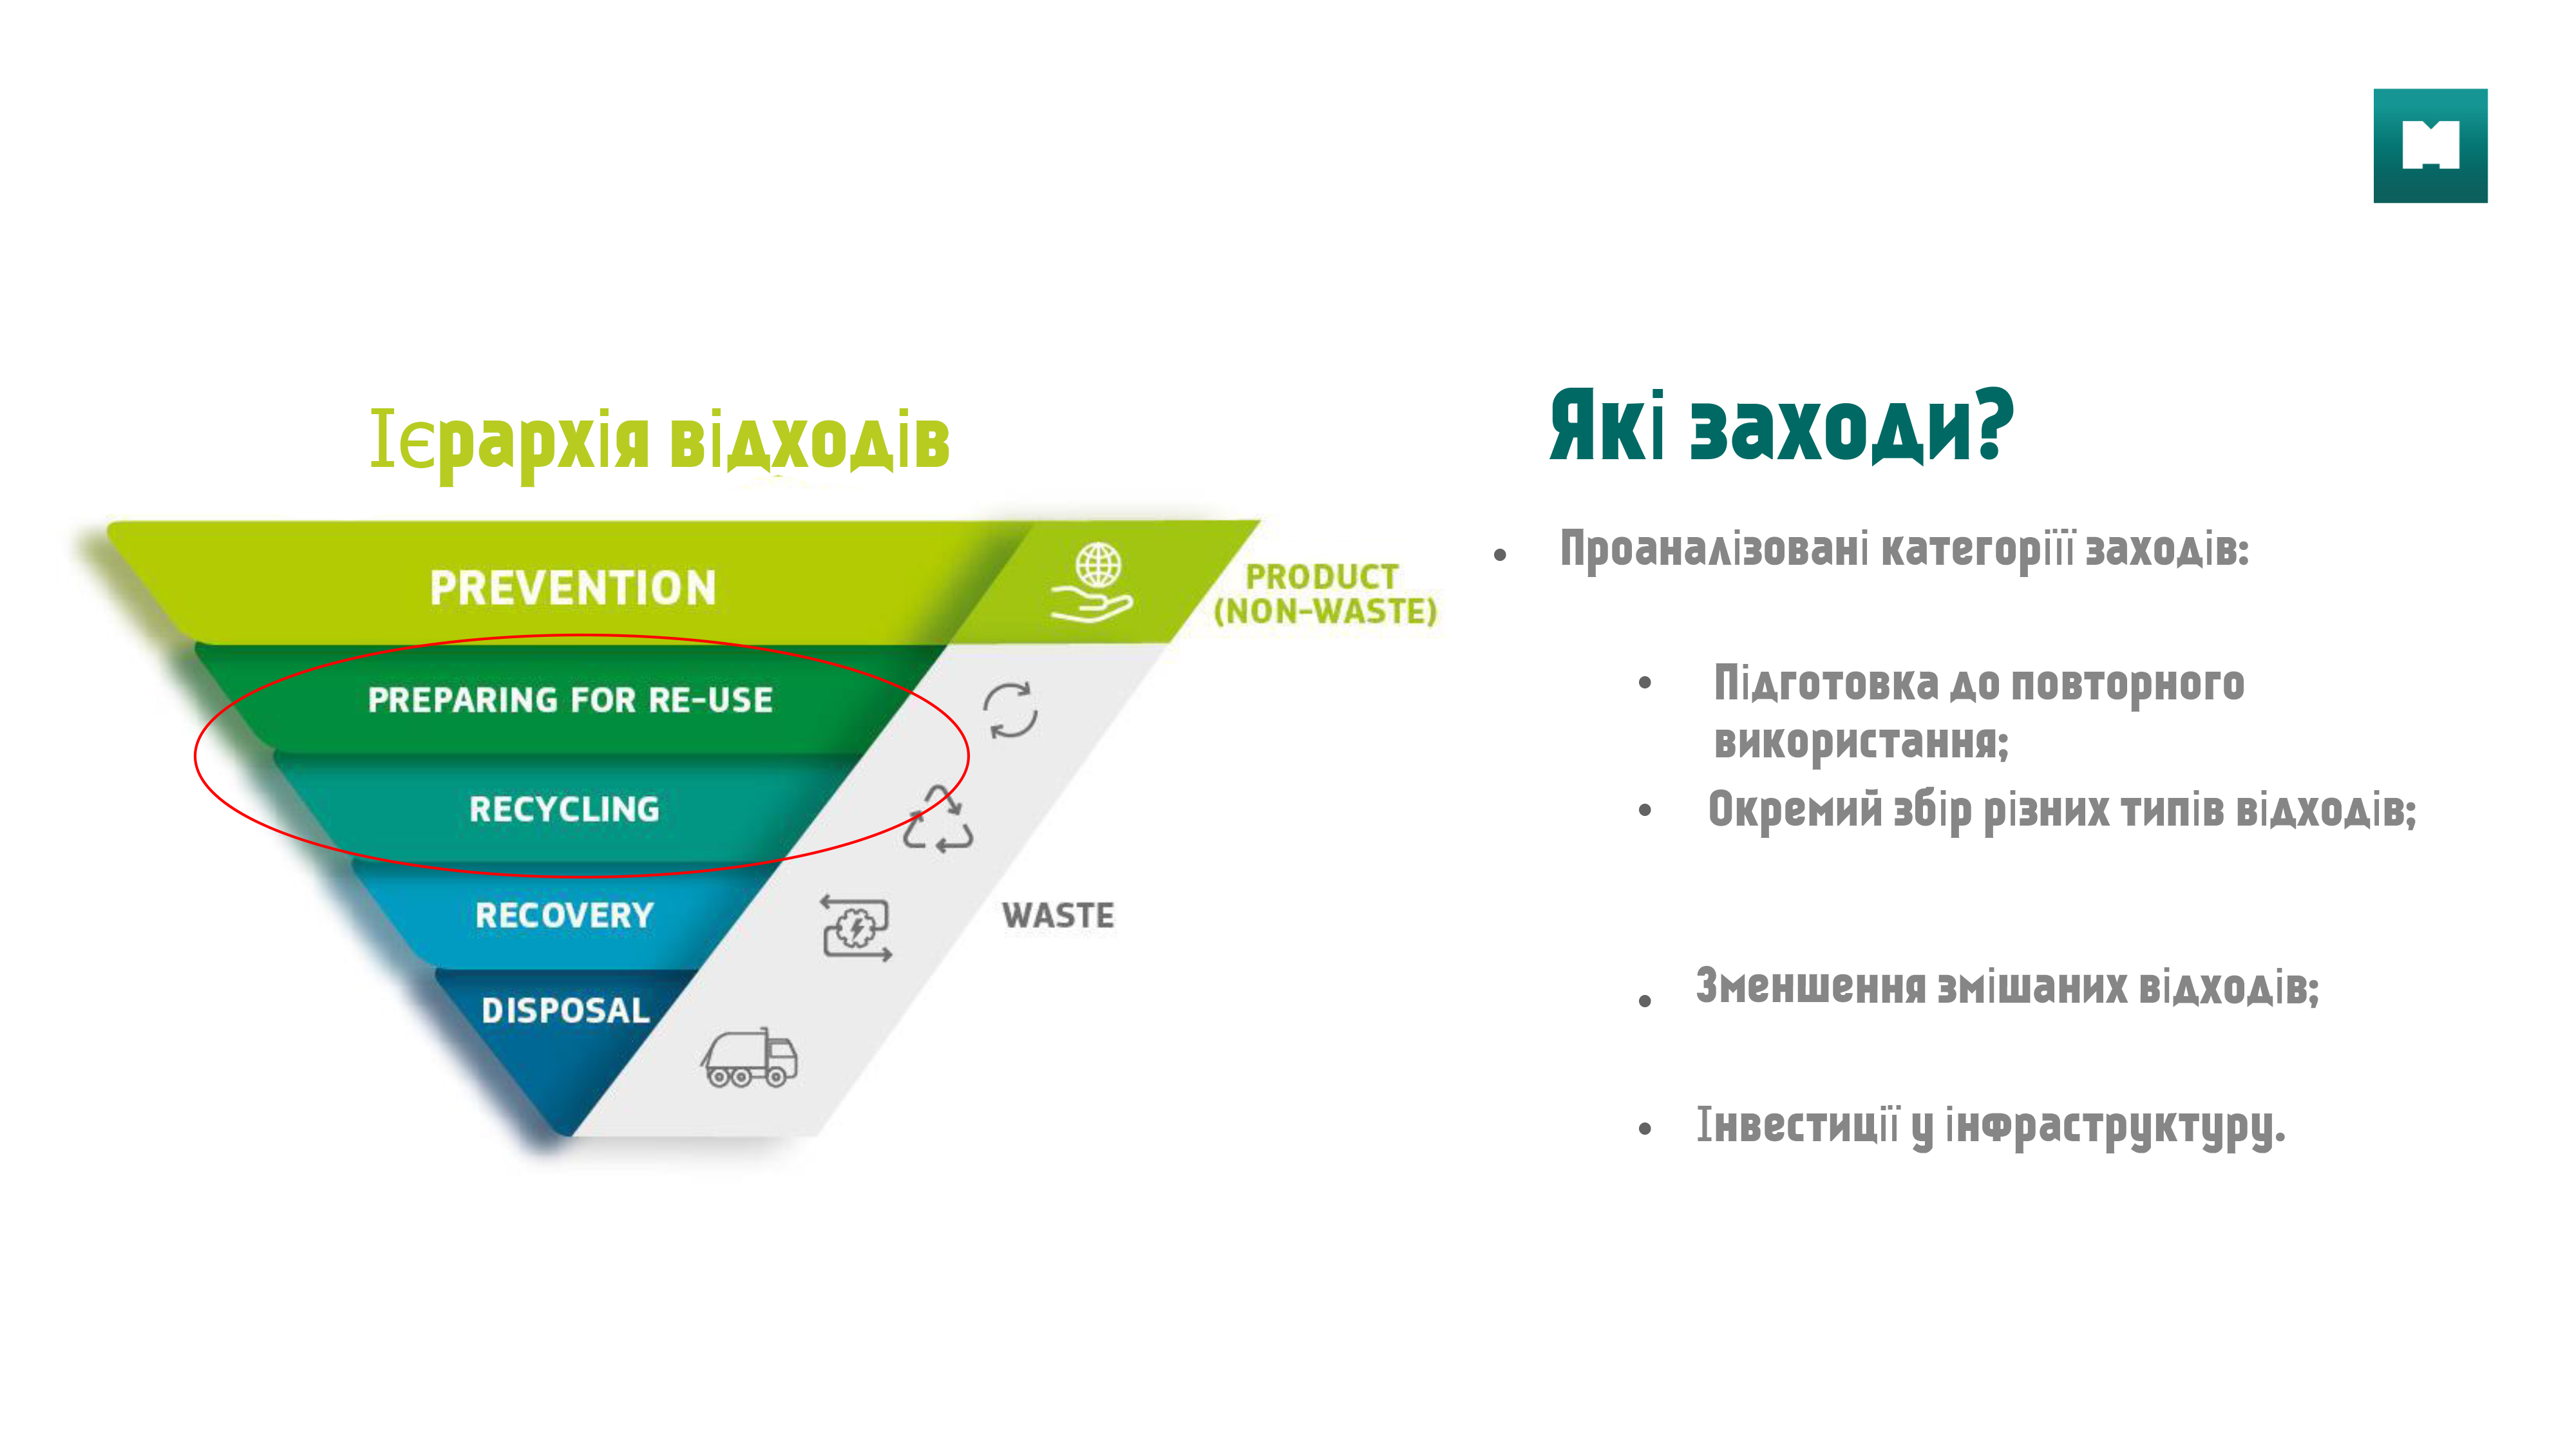 Analysis of measures and policies to increase recycling and re-u